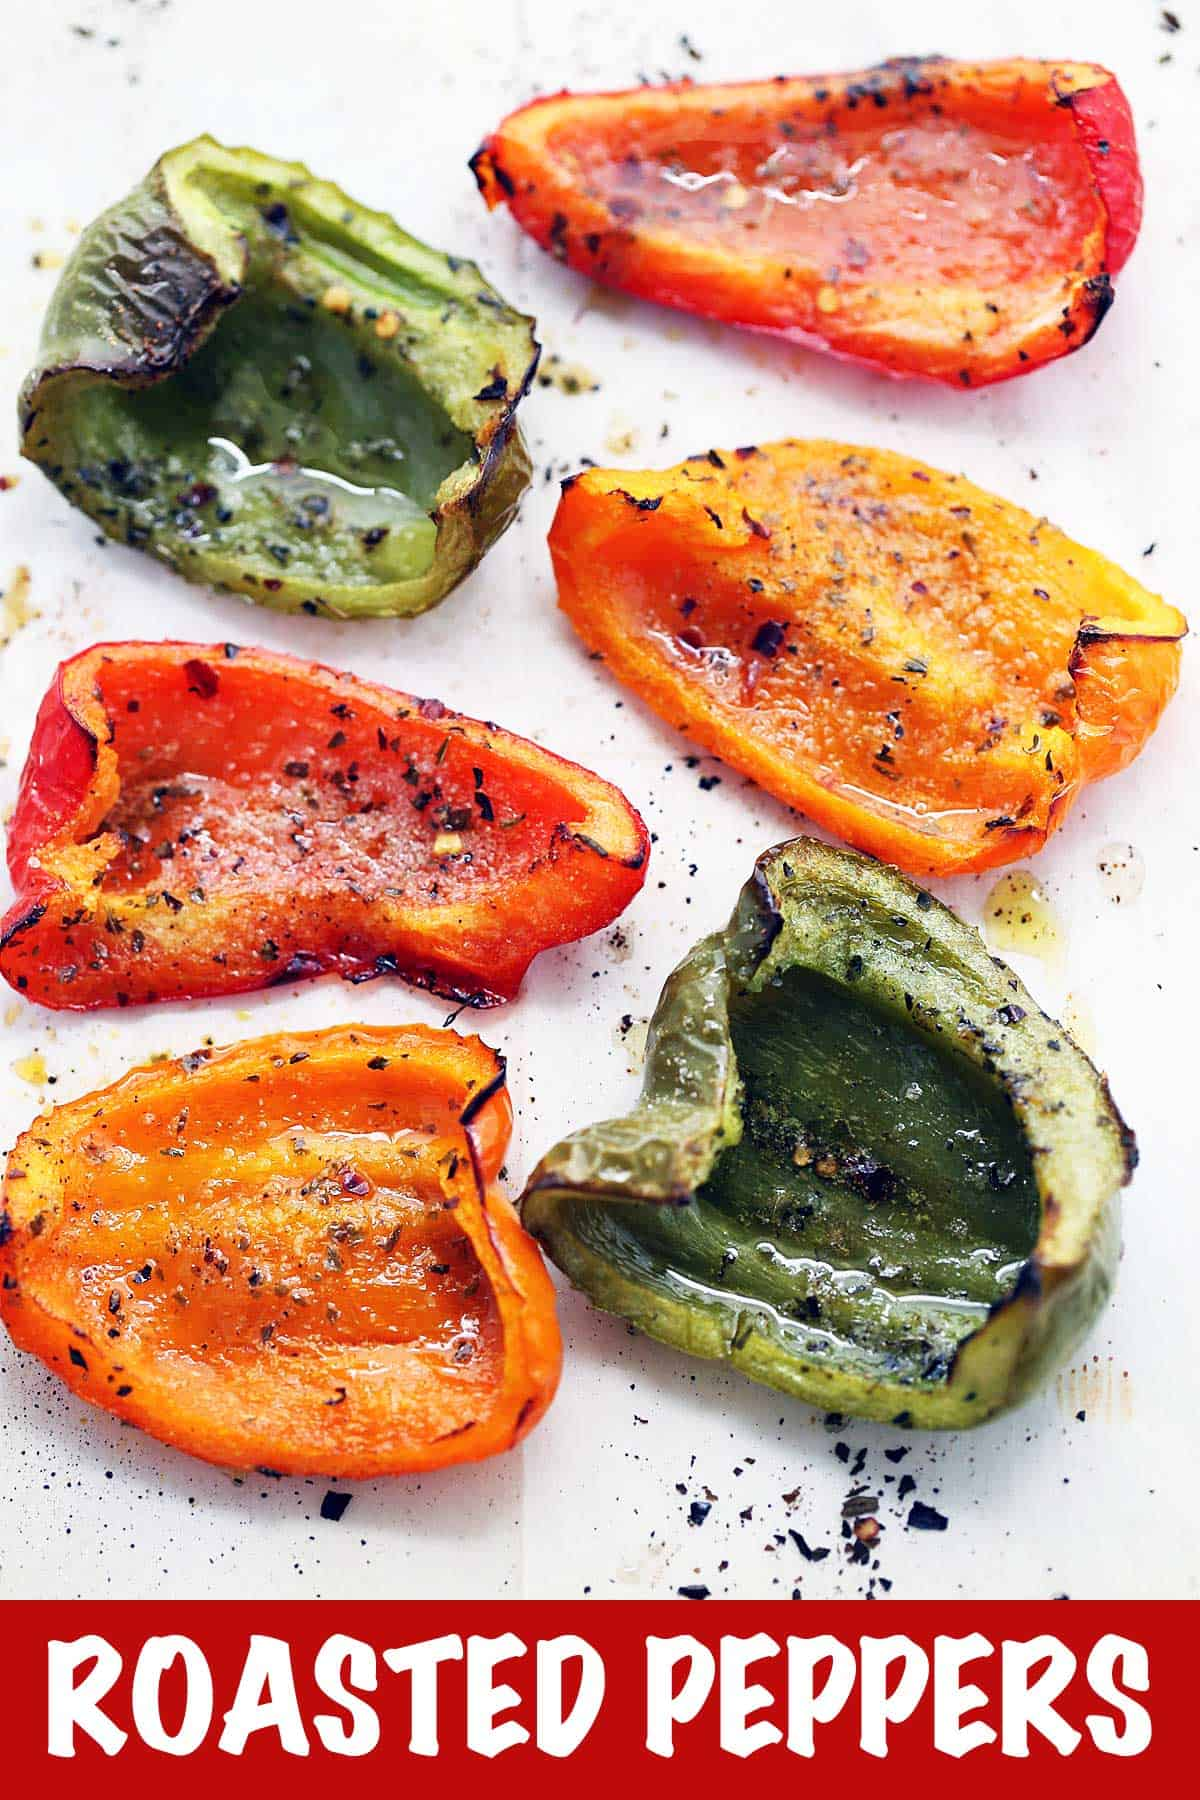 Roasted bell peppers served on a white plate.